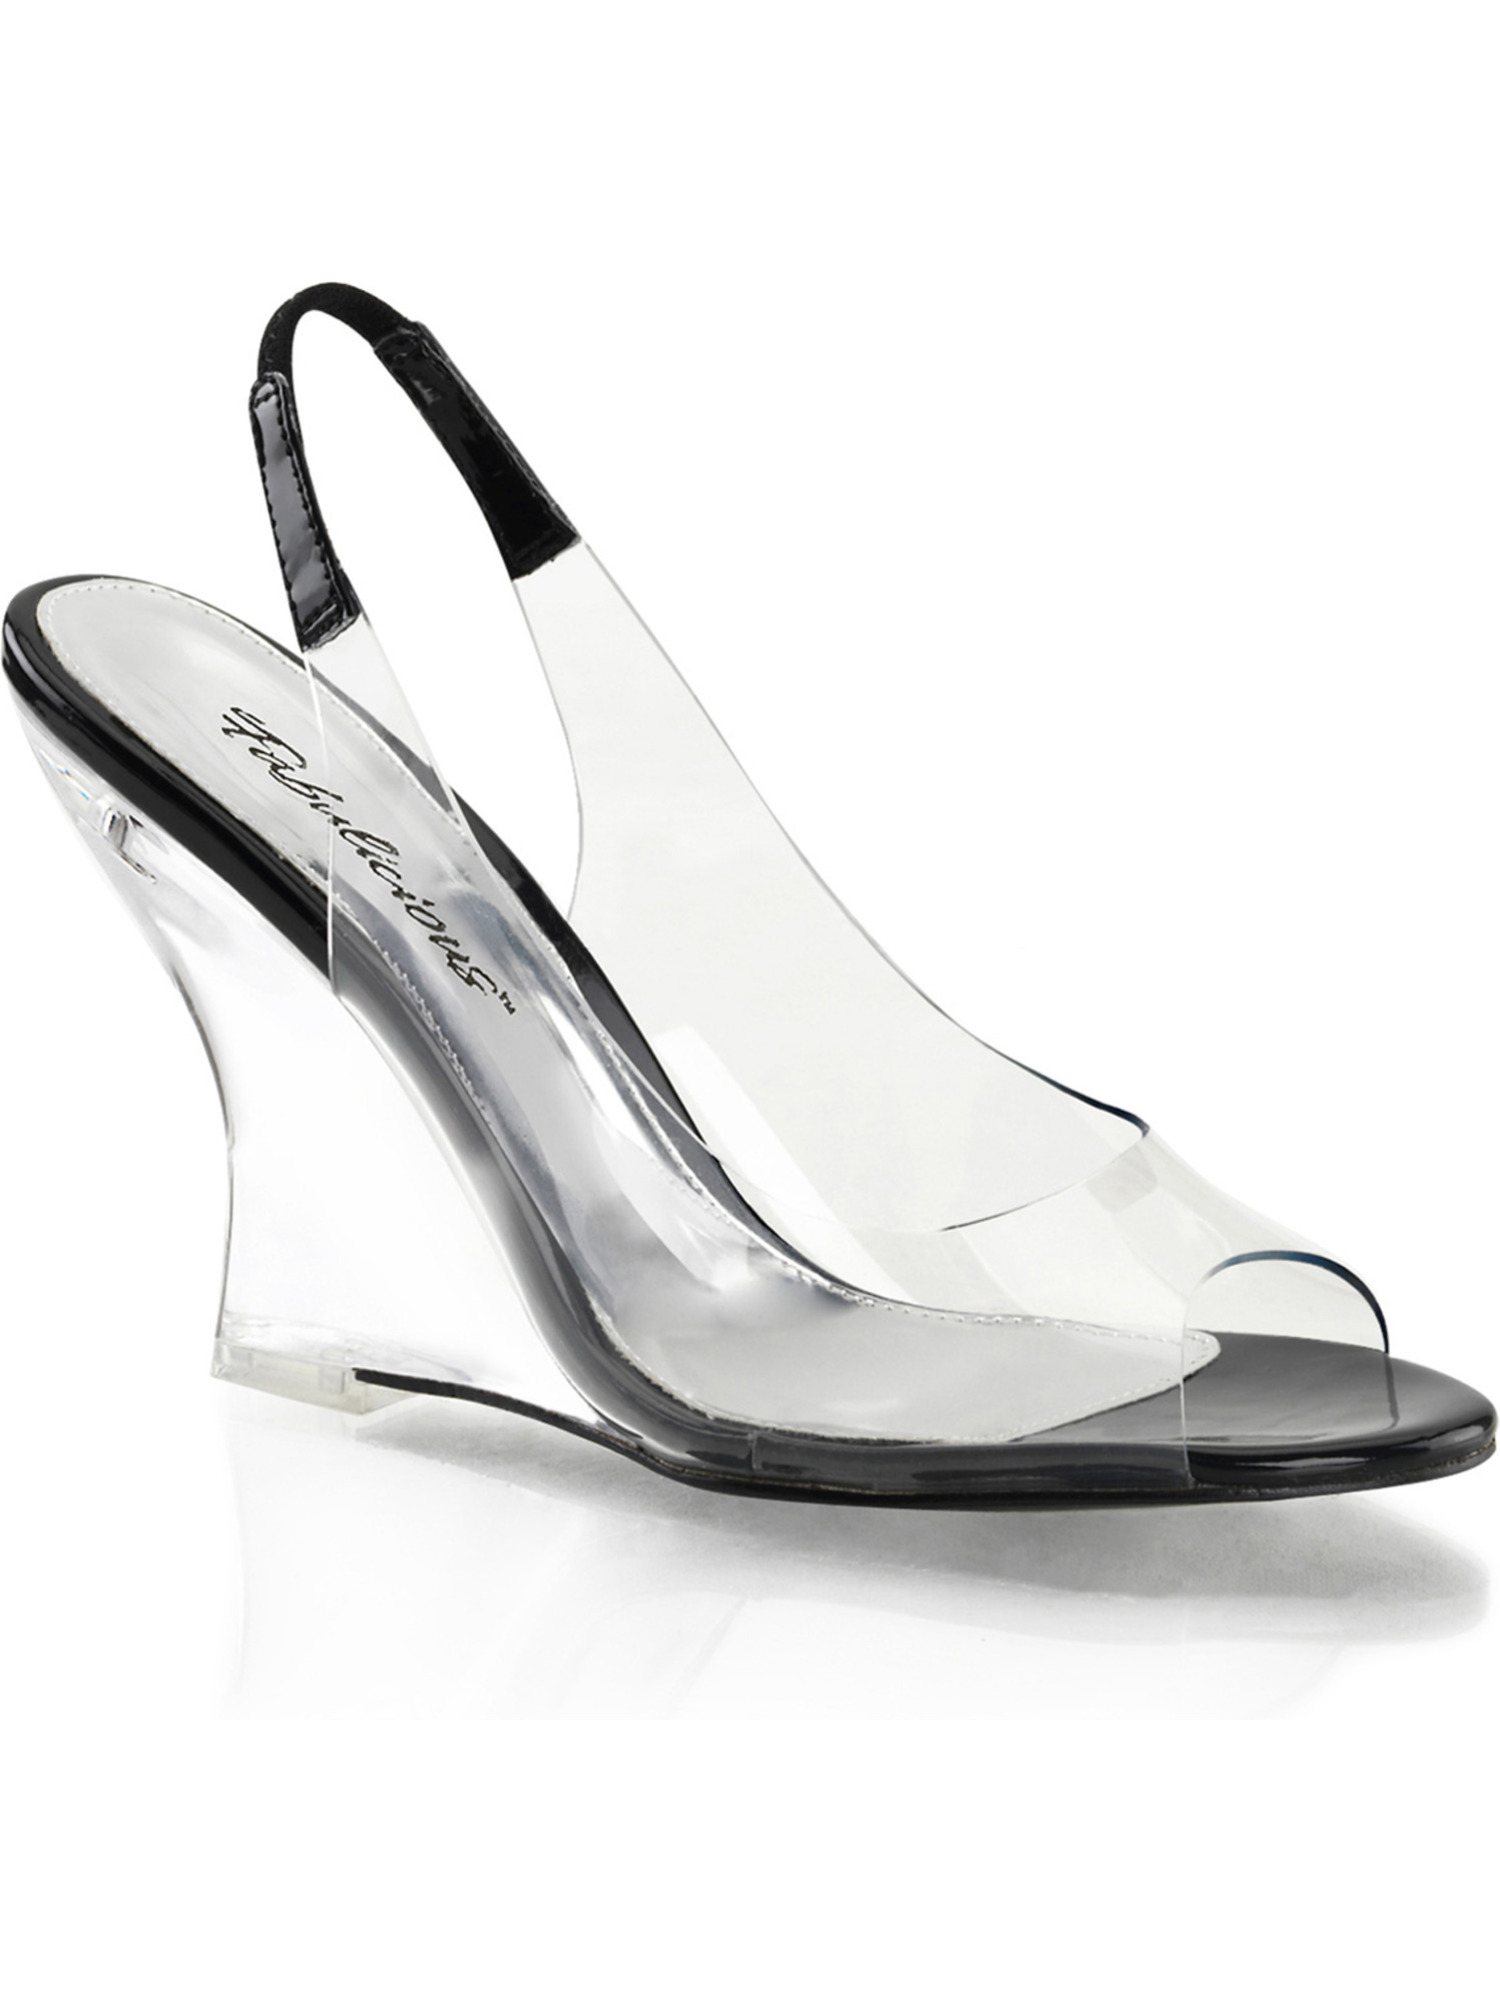 Womens Futuristic Black and Clear Low Wedge Sandal Shoe with 4'' Heels